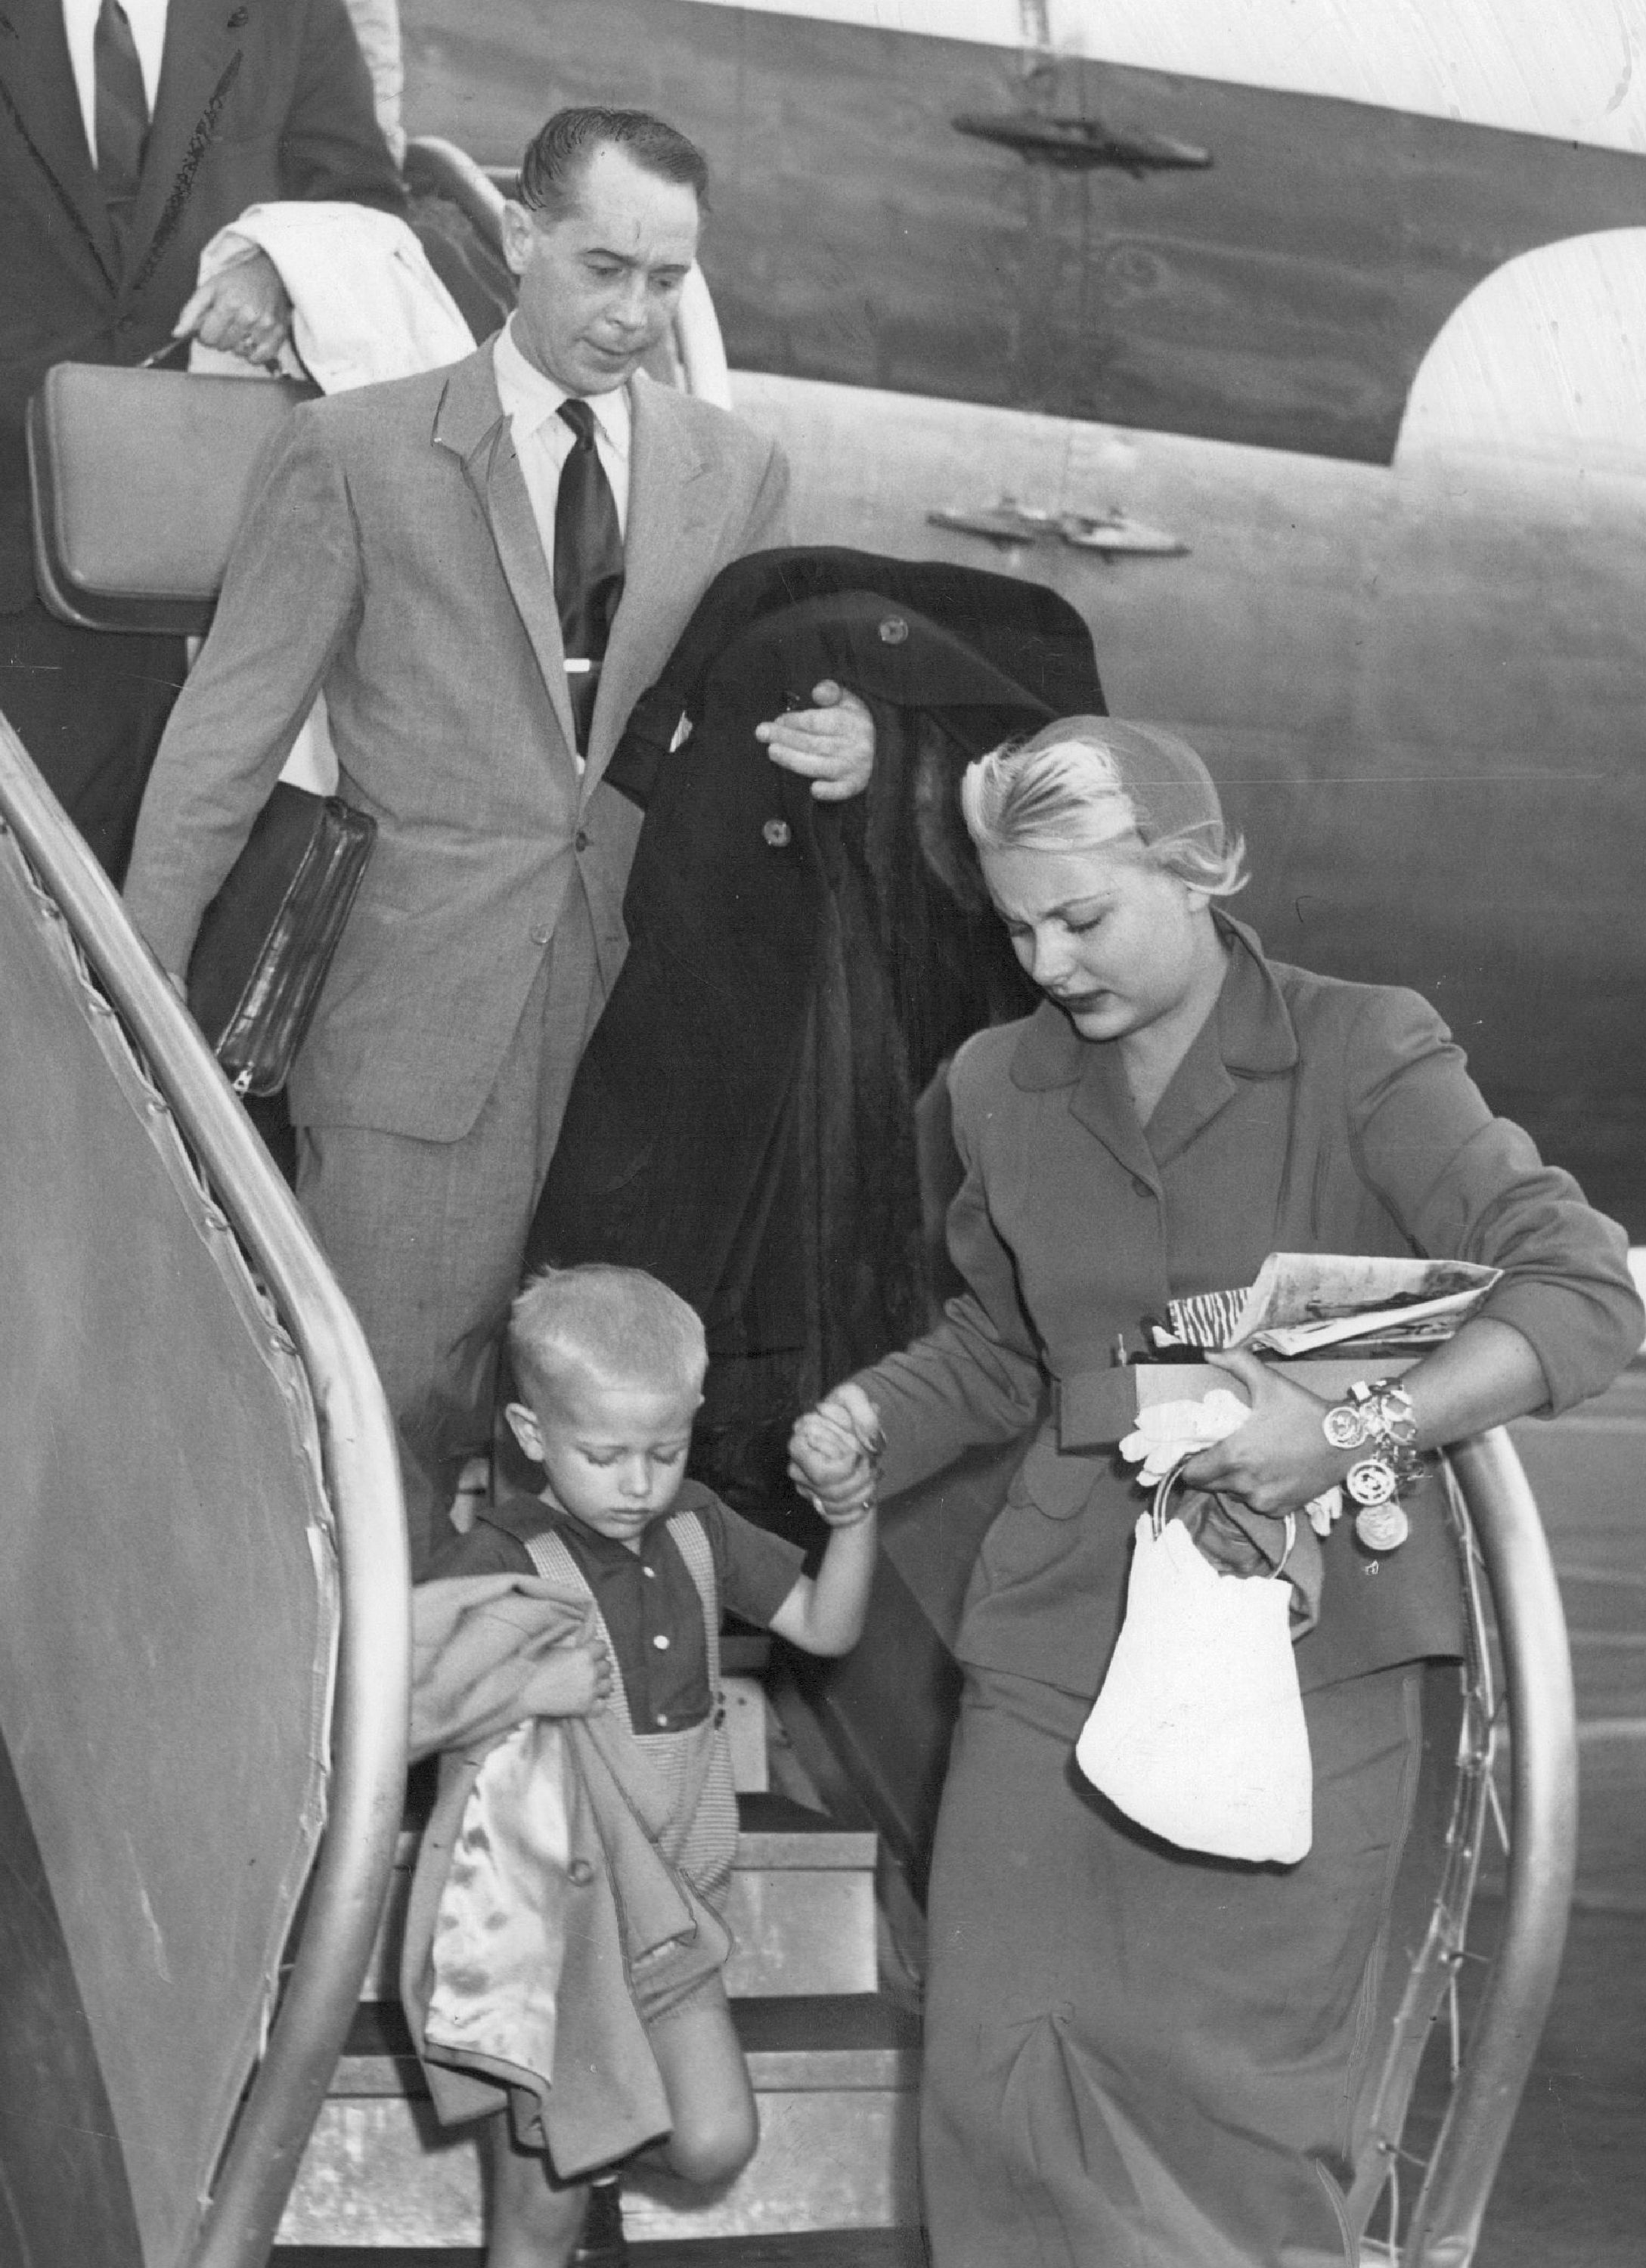 Franchot Tone, Barbara Payton, and her son Johnny Payton getting off a plane in October, 1951 | Photo: Getty Images